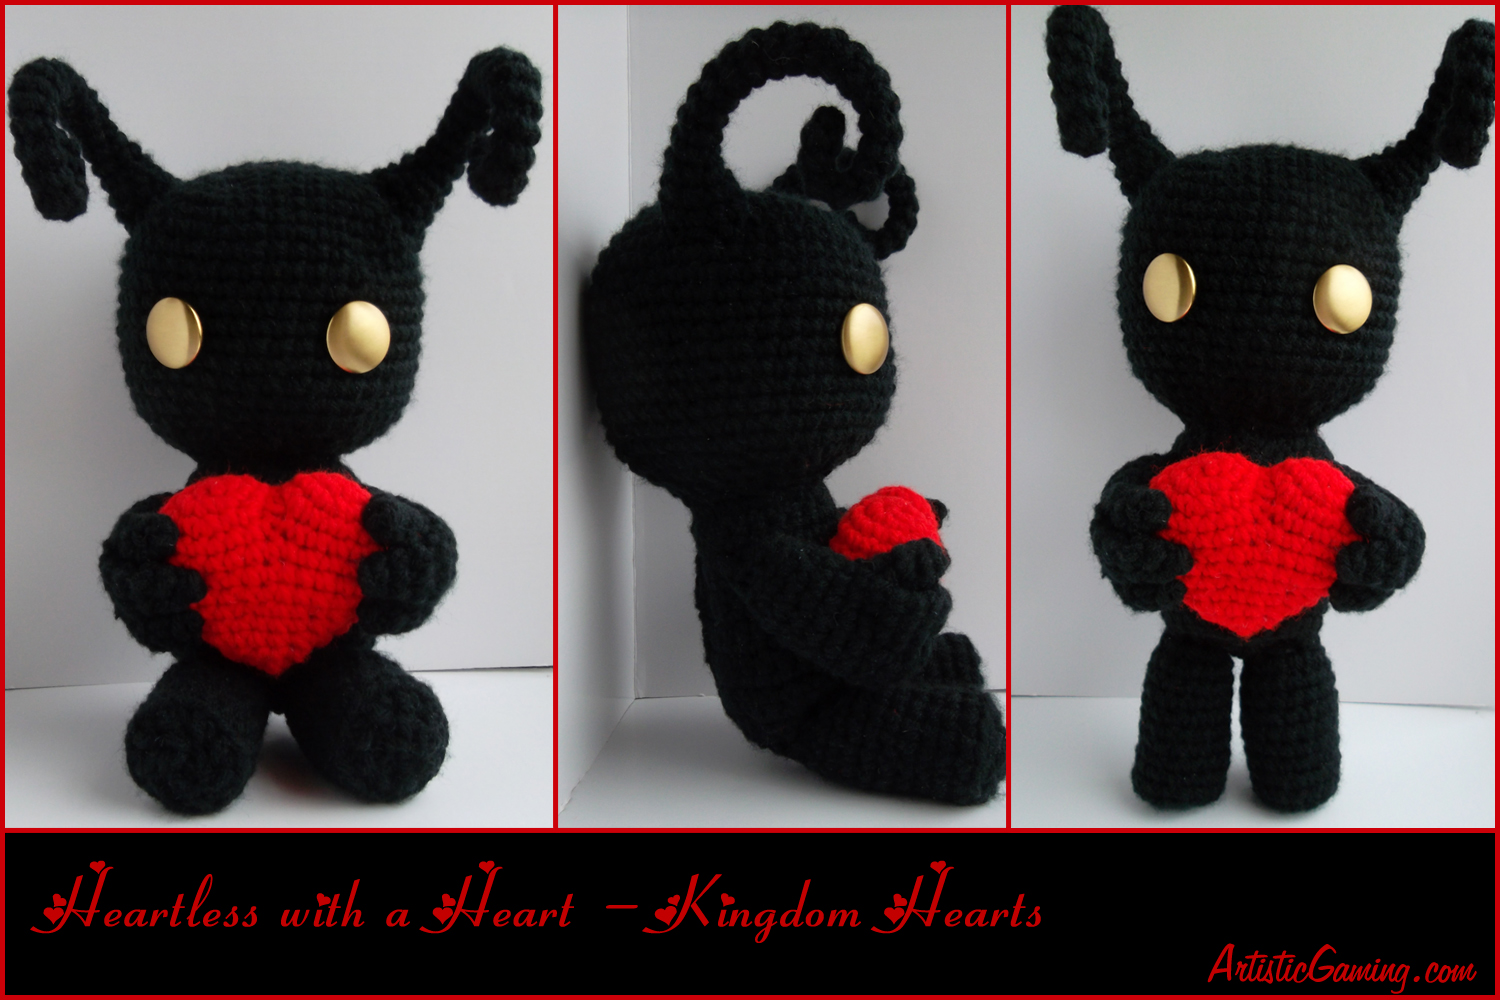 Heartless with a Heart - Kingdom Hearts by GamerKirei